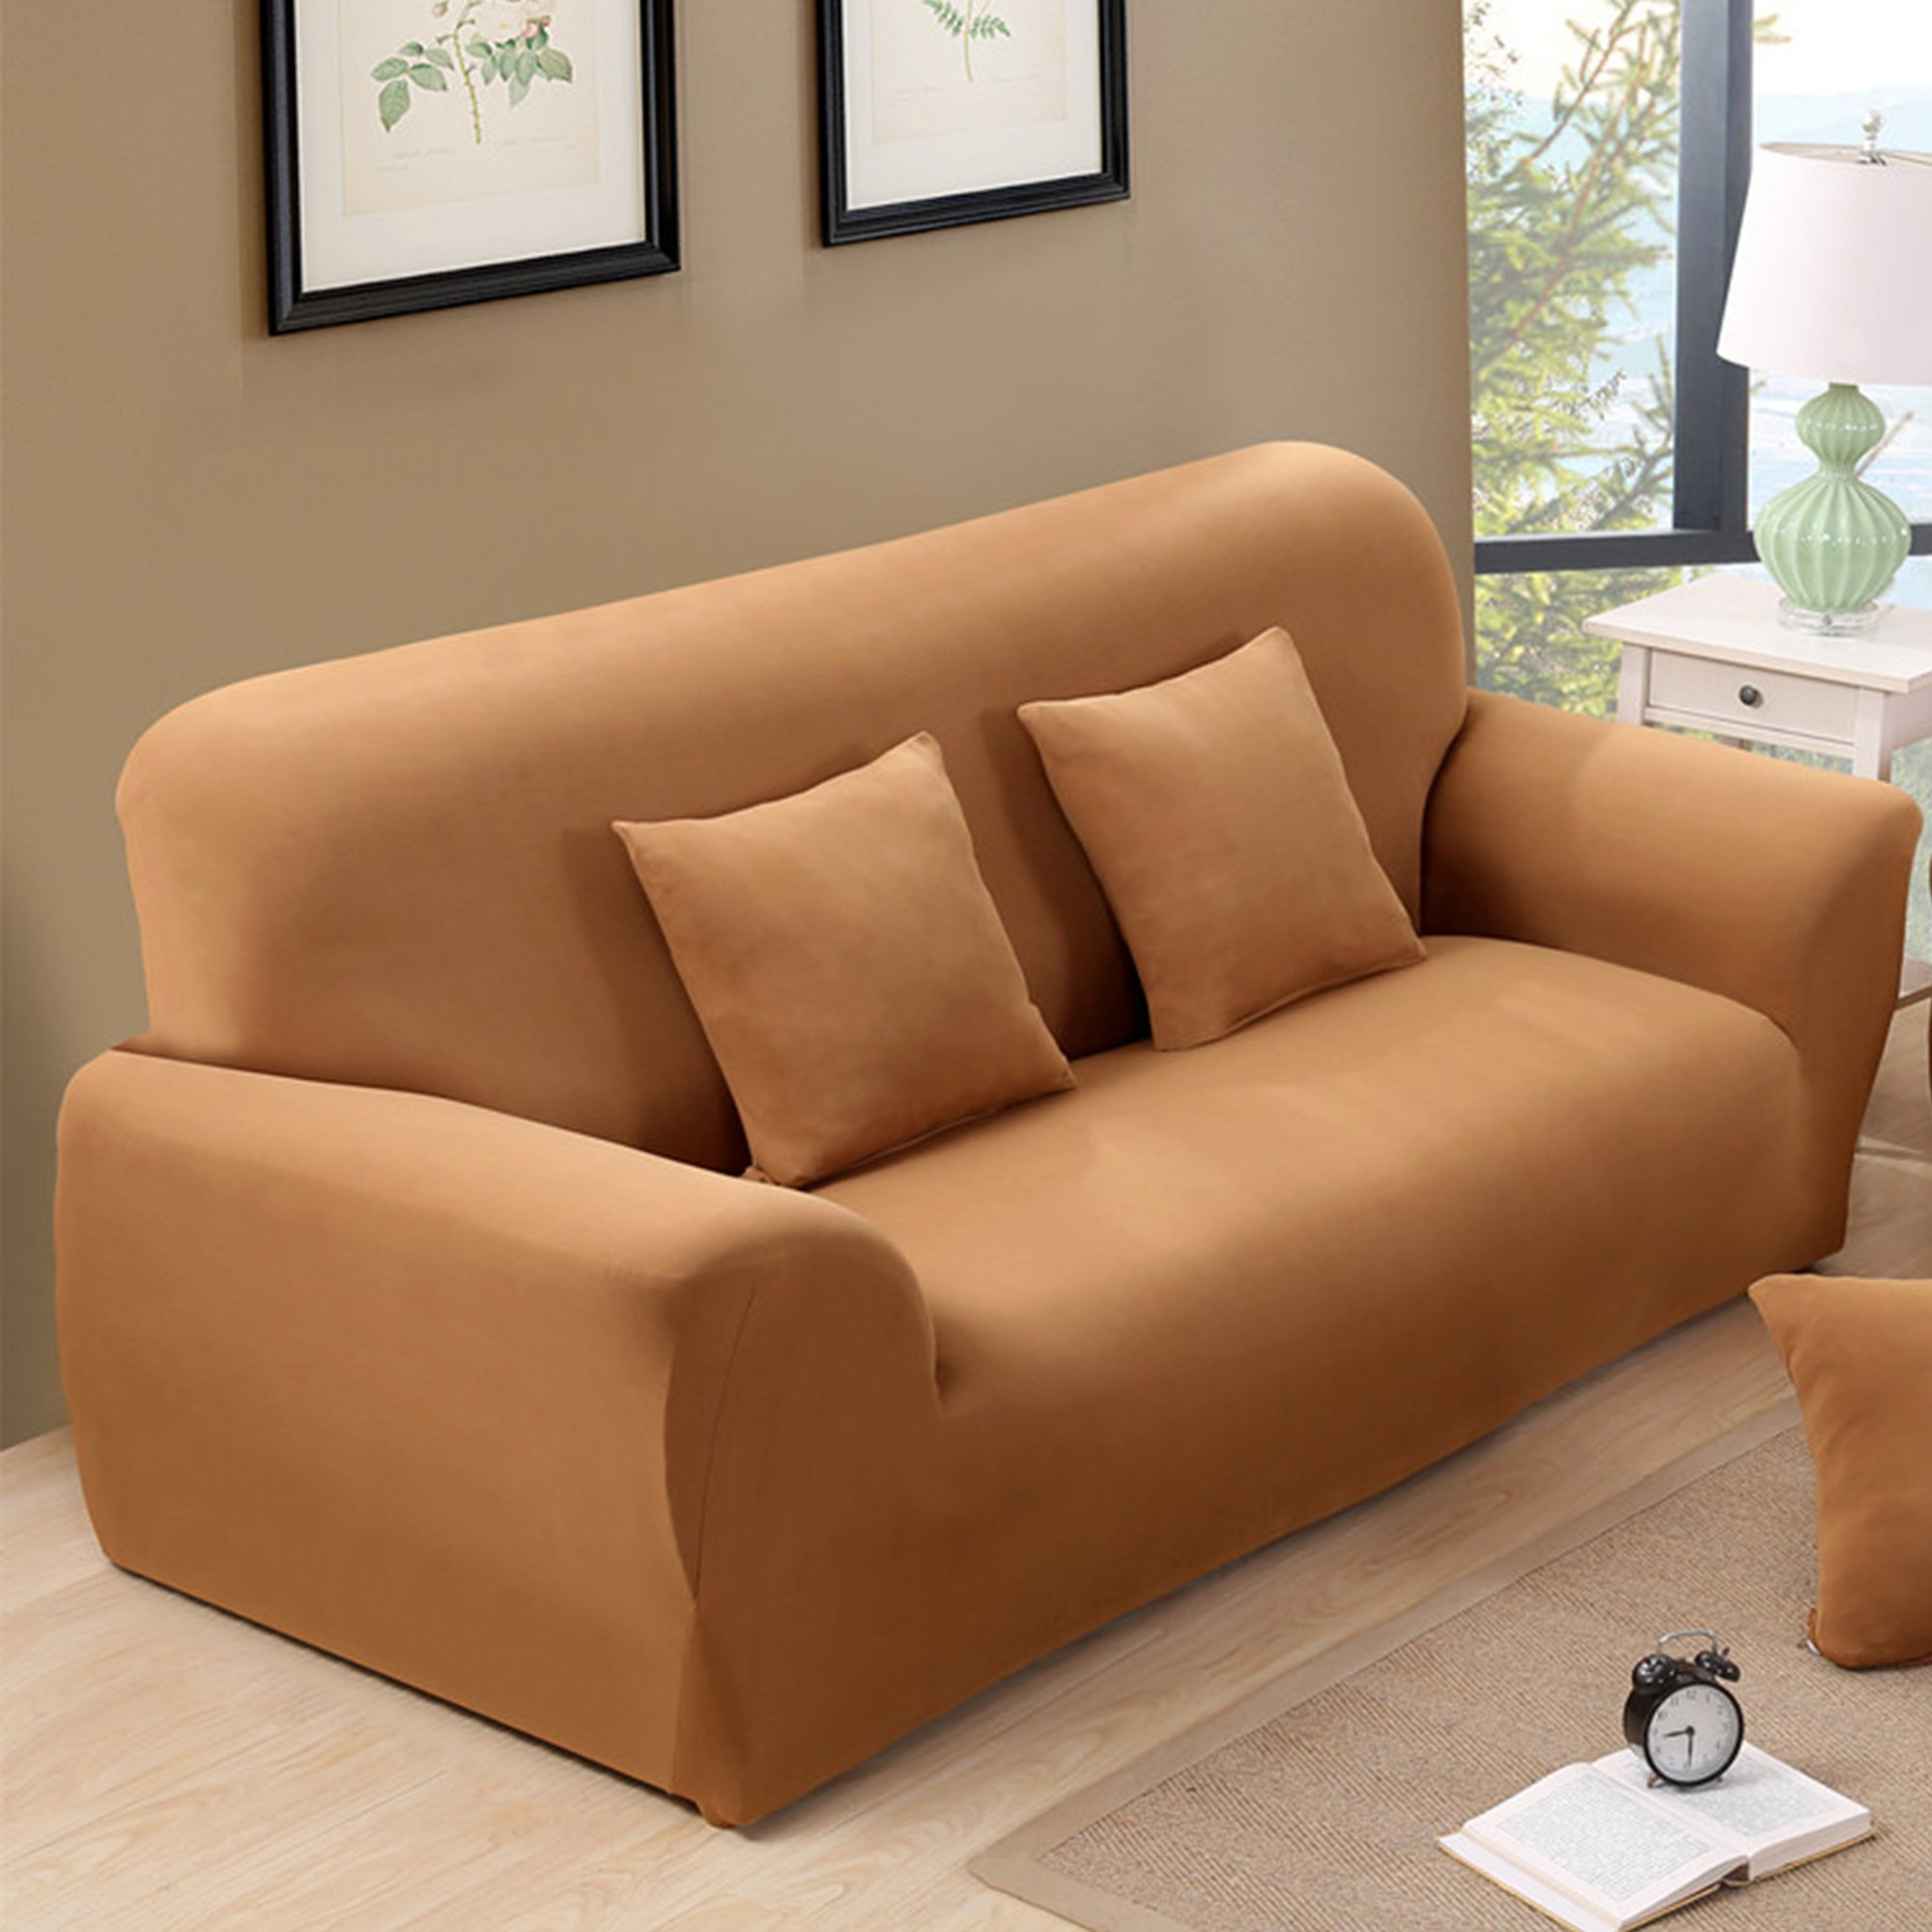 Argstar Love seat Cover Stretch Slipcover for home Lightweight Camel by Argstar